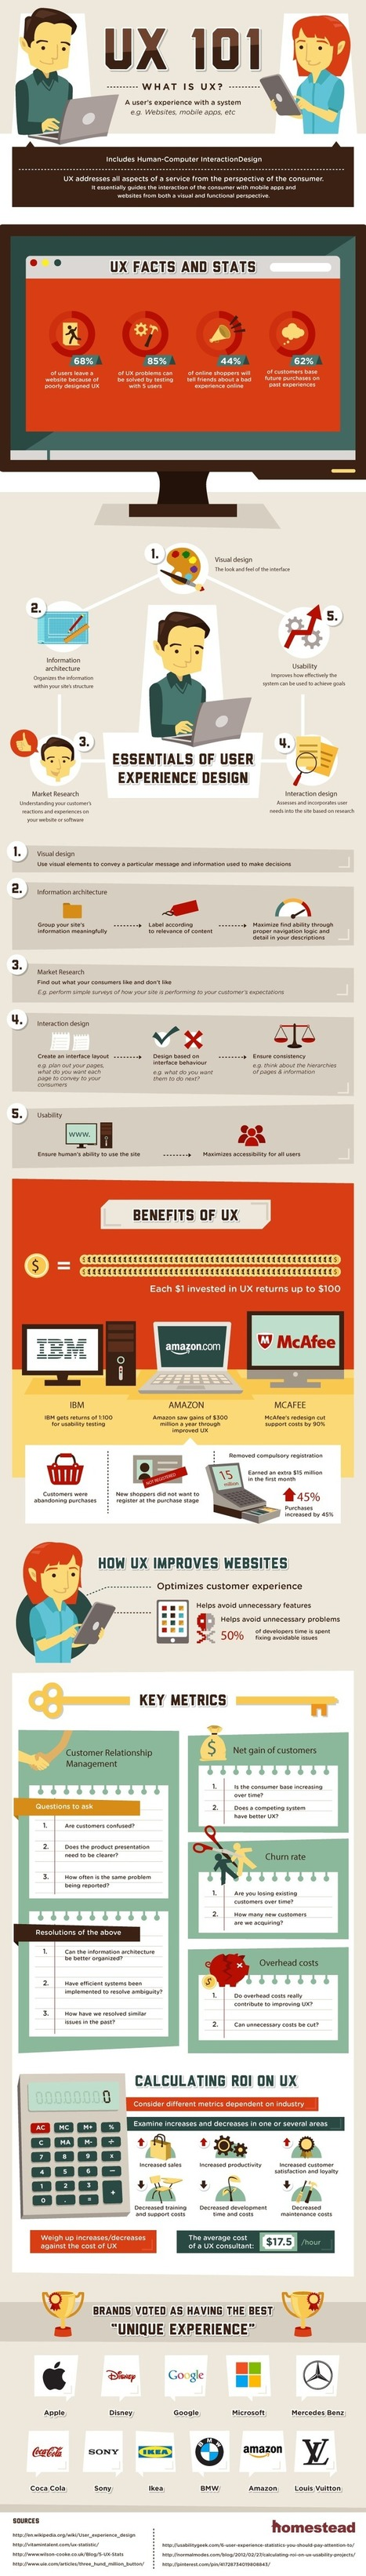 UX 101: What Is User Experience? [infographic] | NYL - News YOU Like | Scoop.it